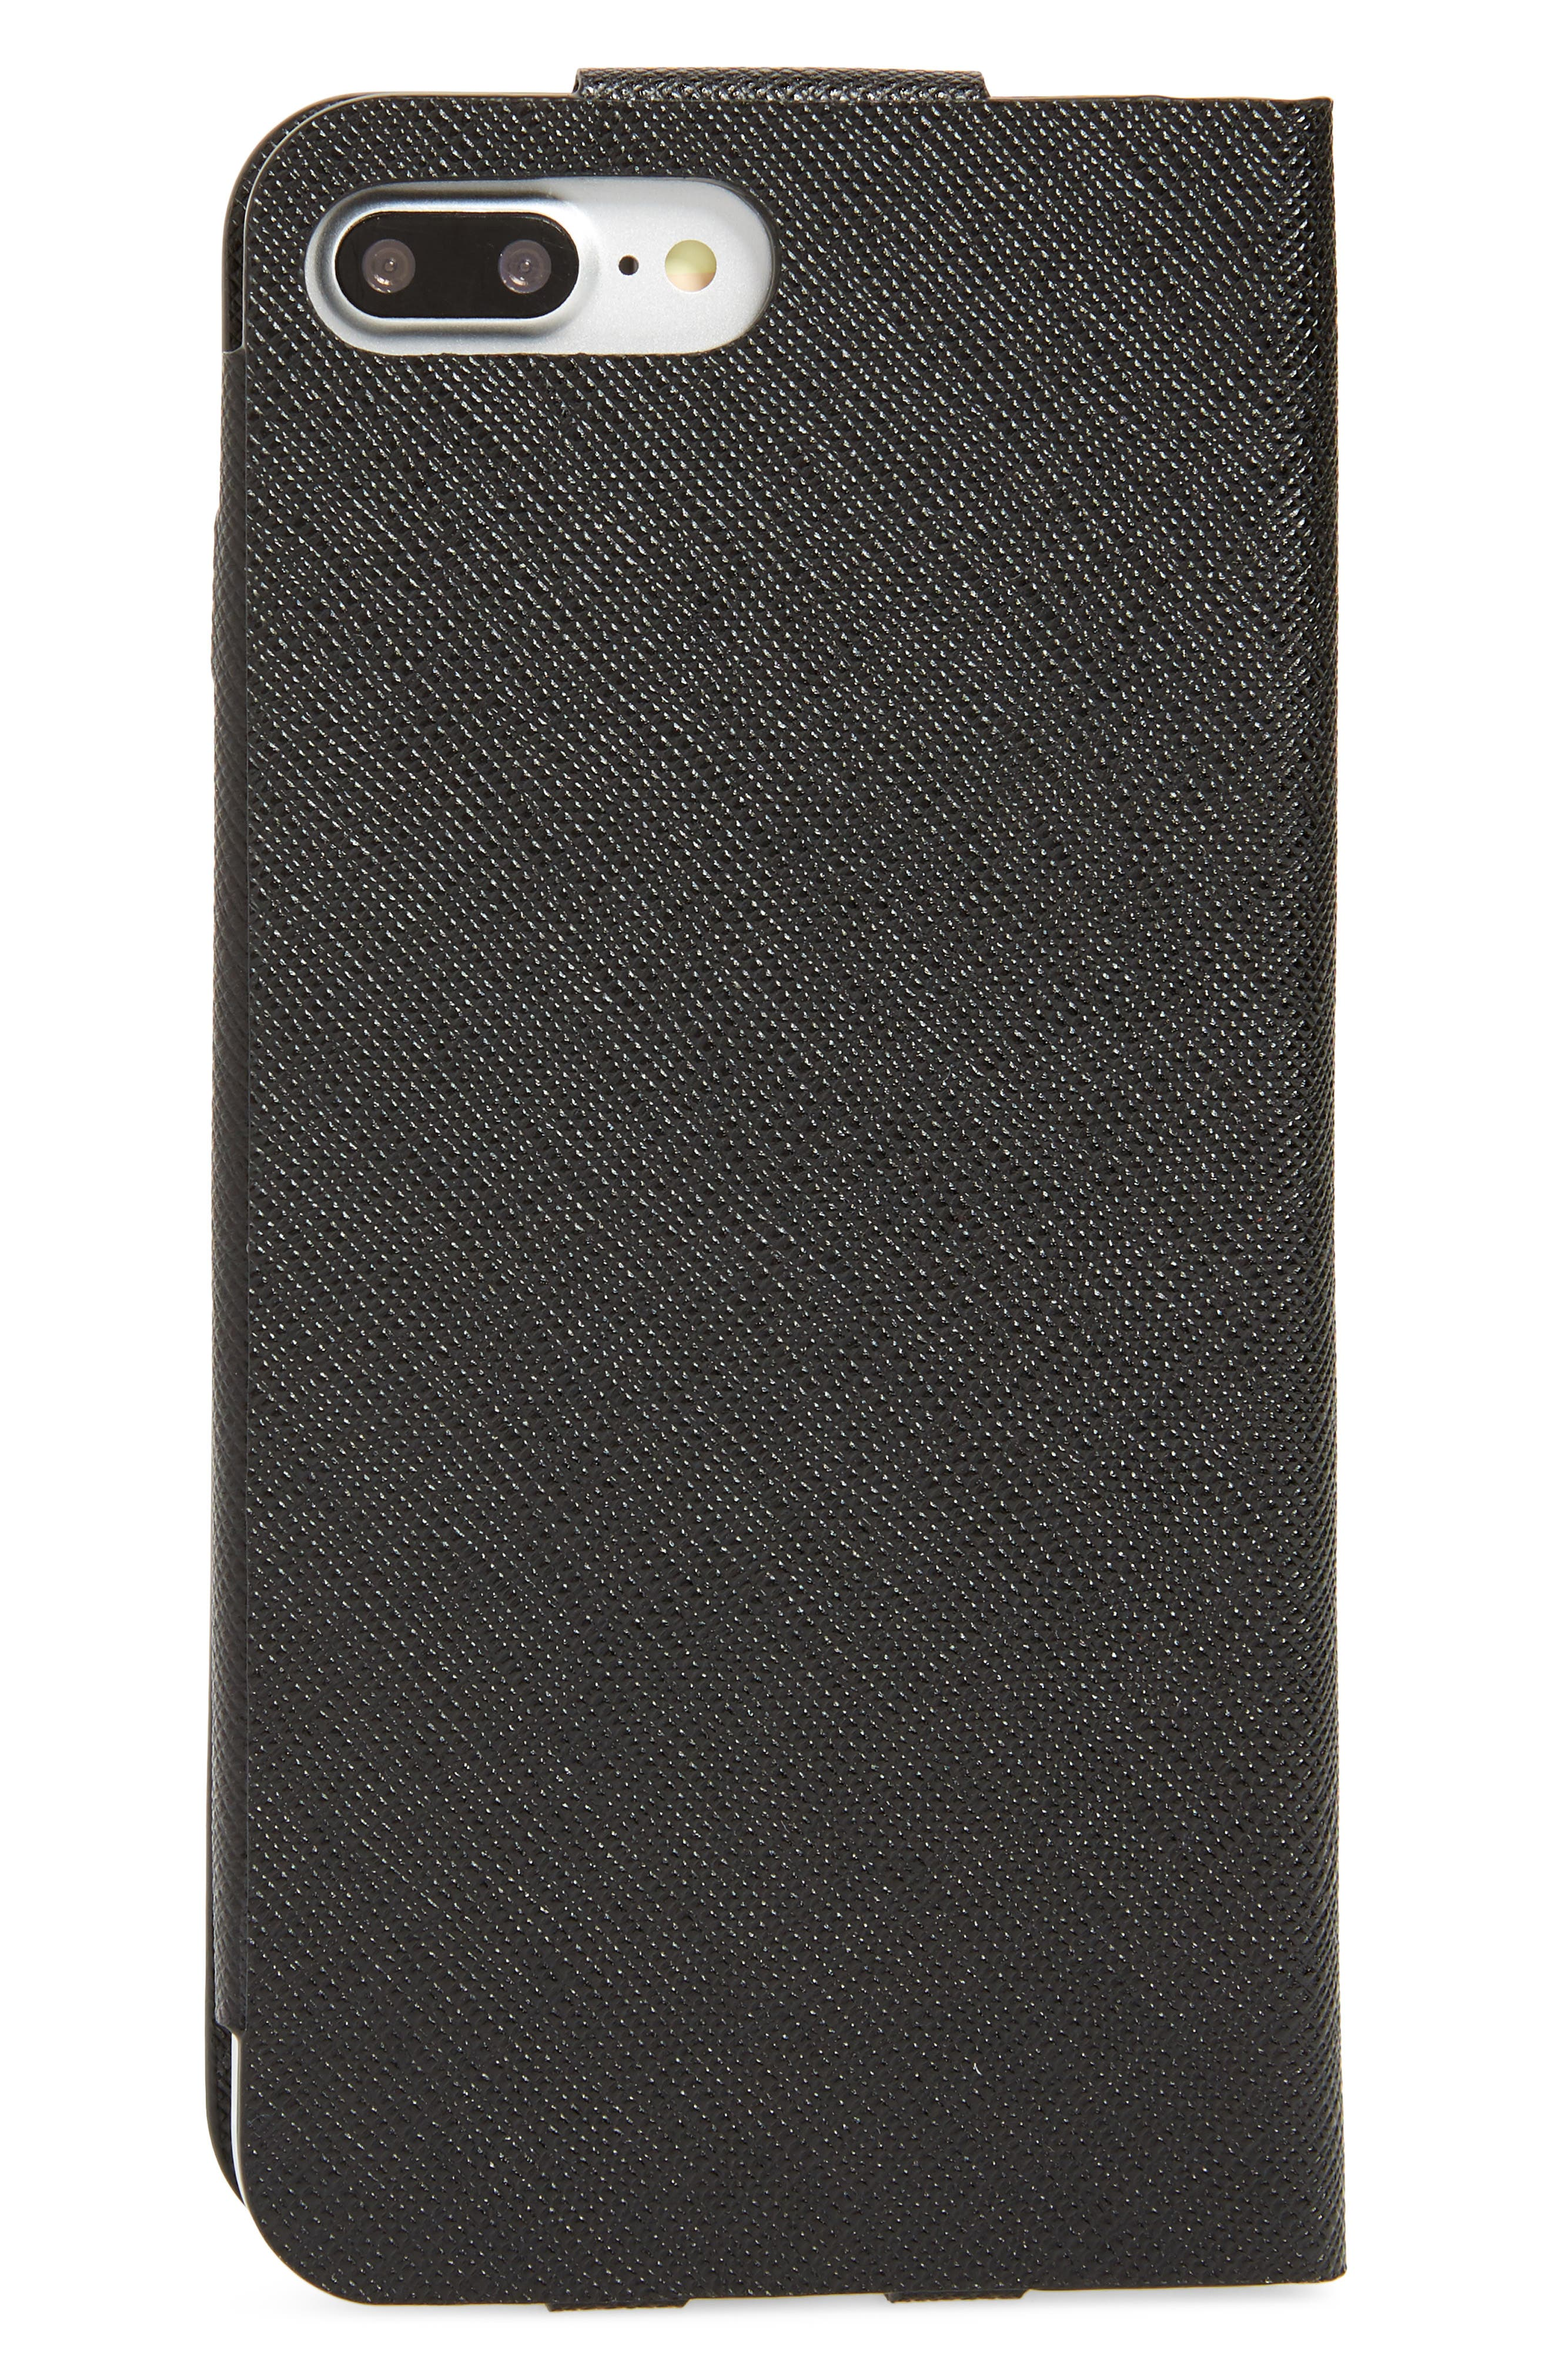 PRADA, Saffiano Metal Oro Book iPhone 7 Plus Wallet, Alternate thumbnail 3, color, NERO